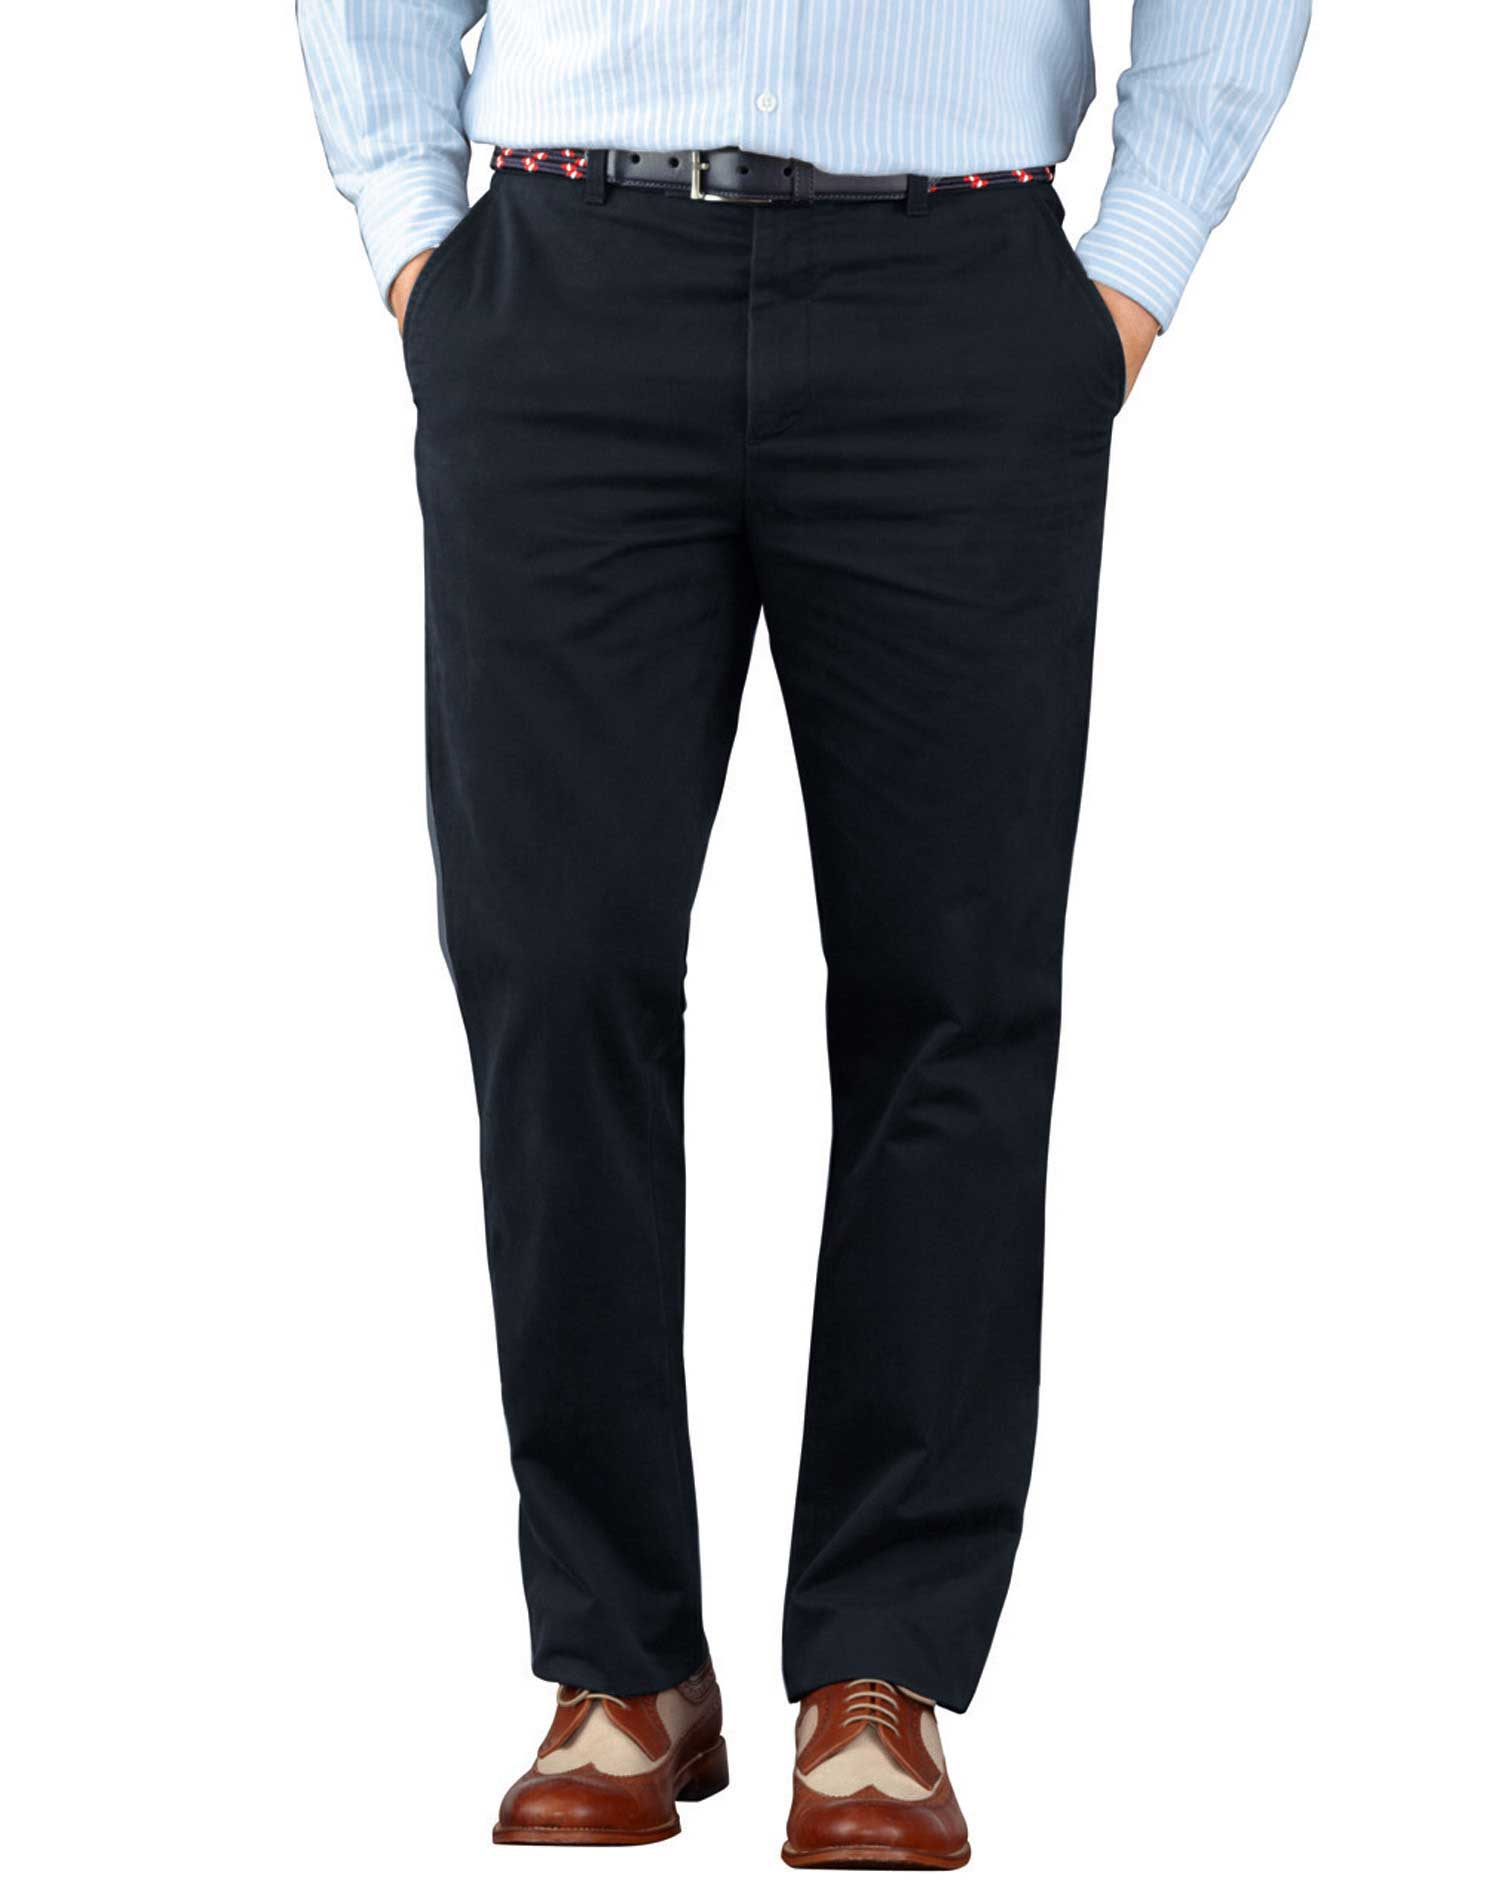 Navy Slim Fit Flat Front Weekend Cotton Chino Trousers Size W36 L32 by Charles Tyrwhitt